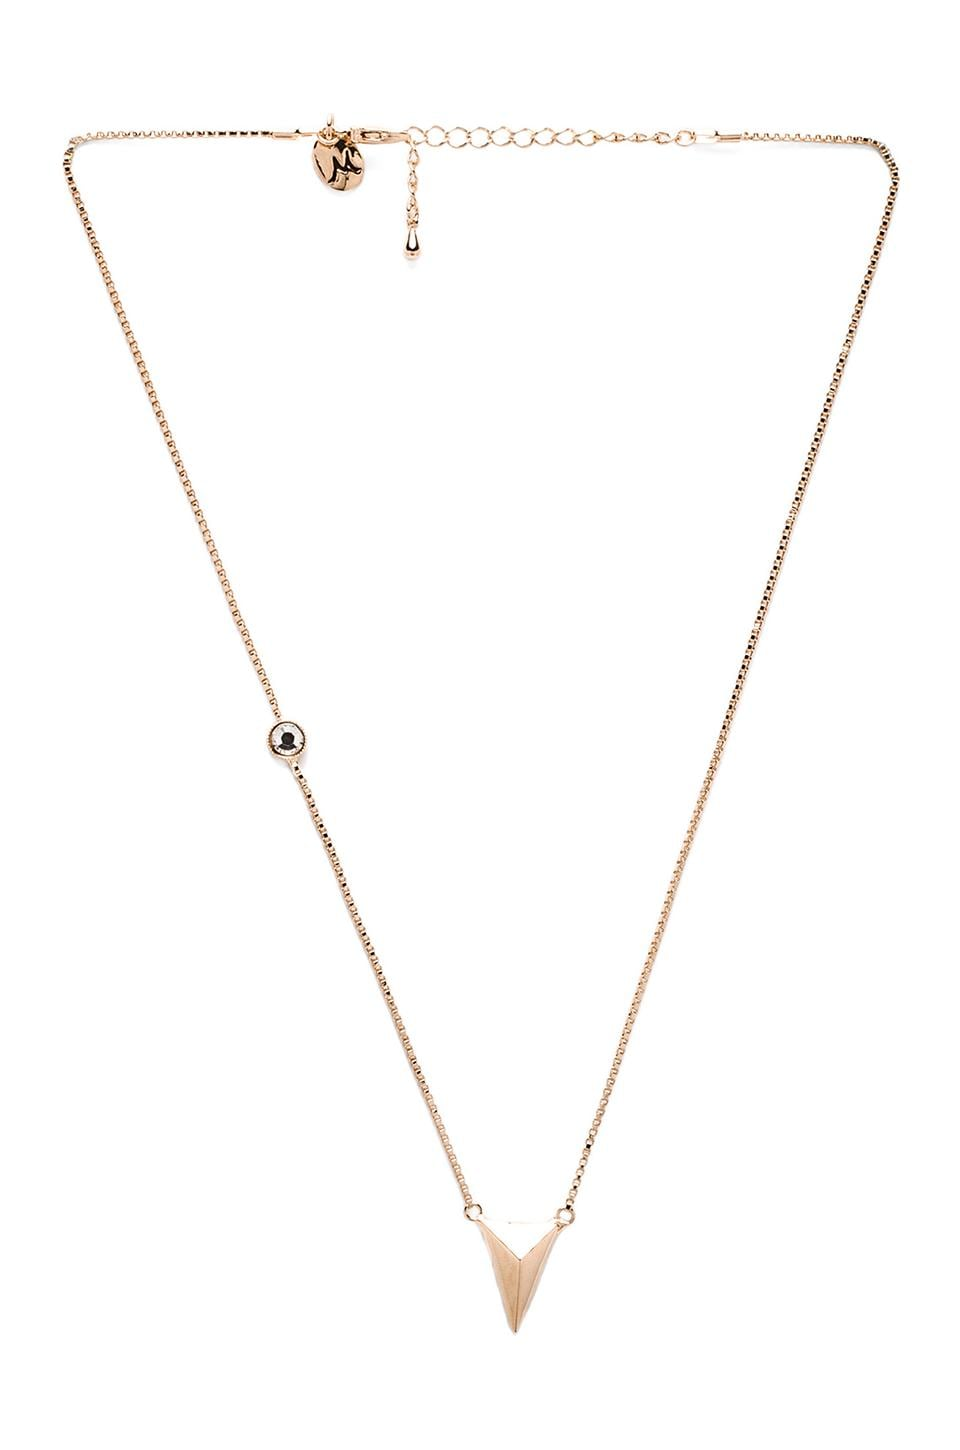 Nicole Meng Spire Necklace in Gold/Crystal